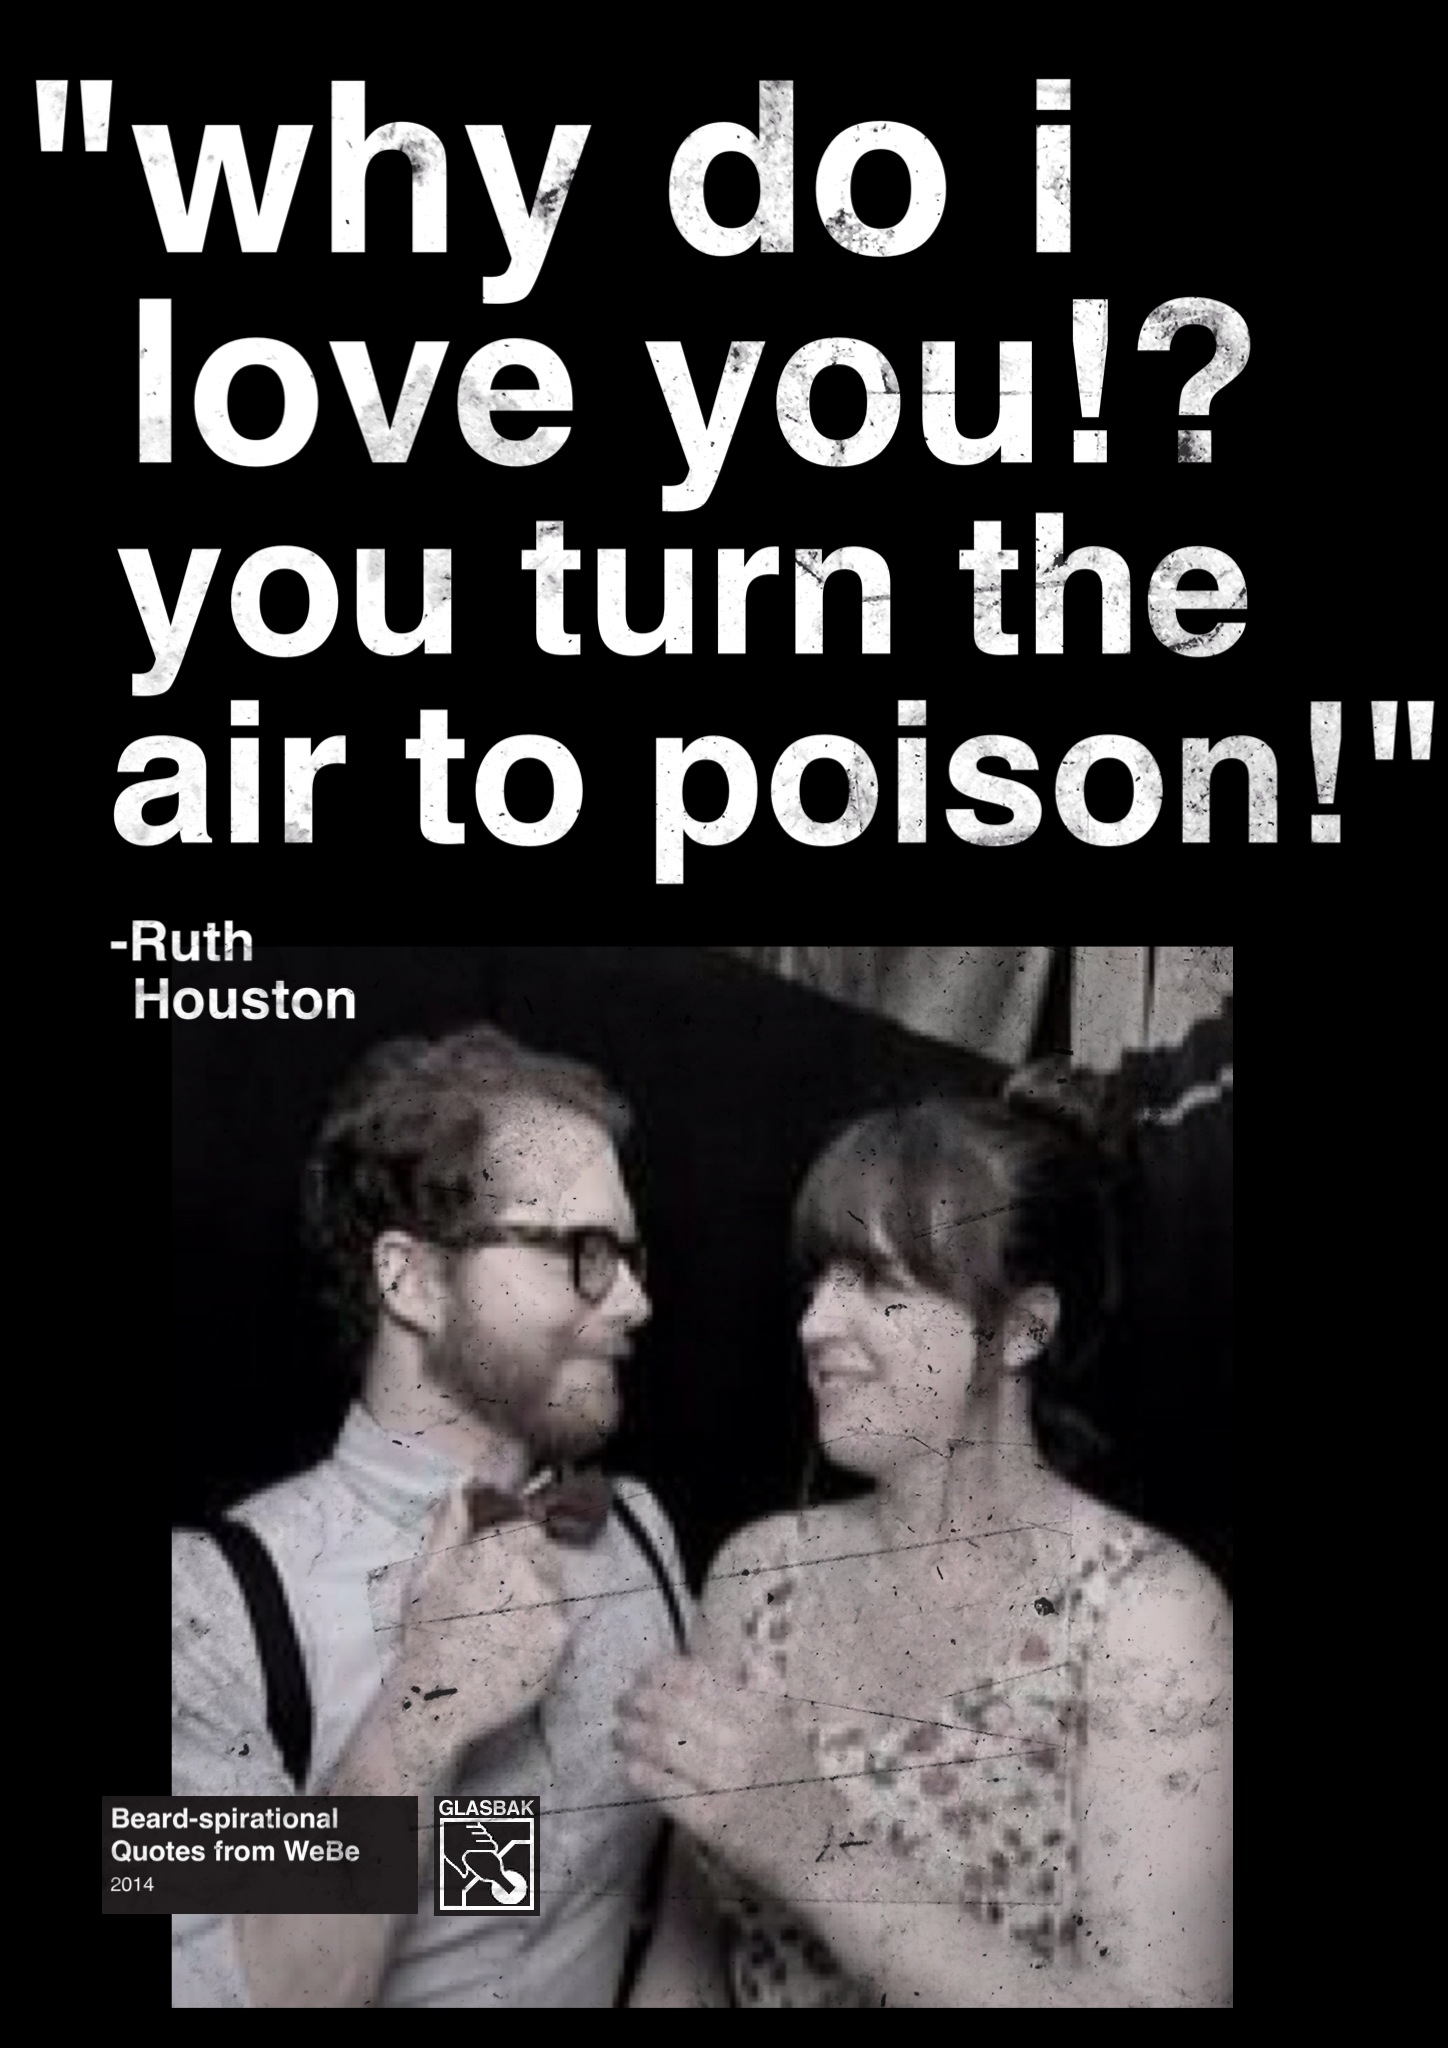 2014-04-07_why do i love you you turn the air to poison.jpg